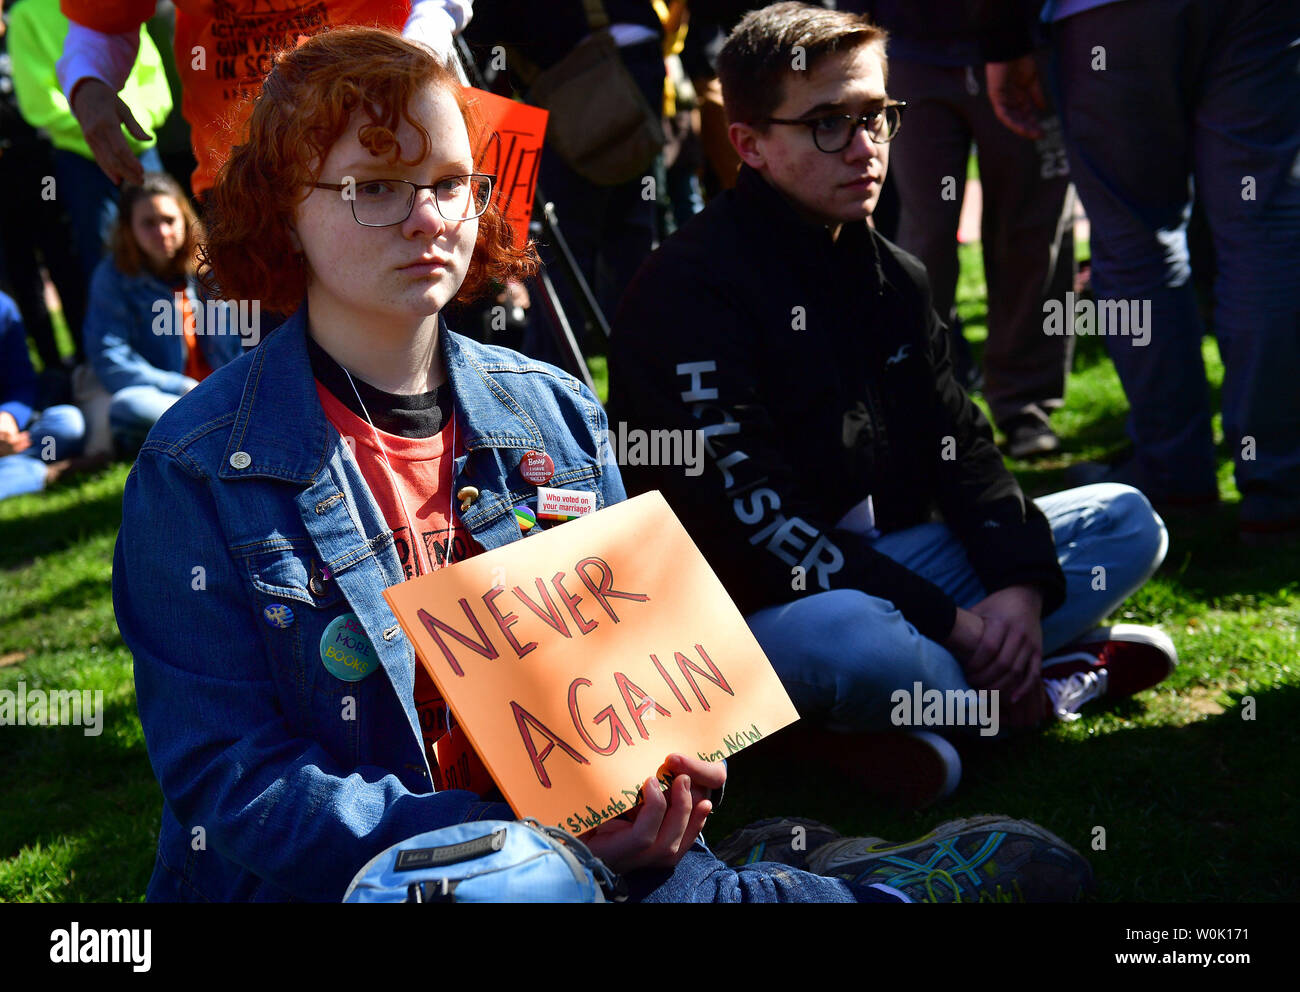 Local area students hold a gun protest sit-in near the White House